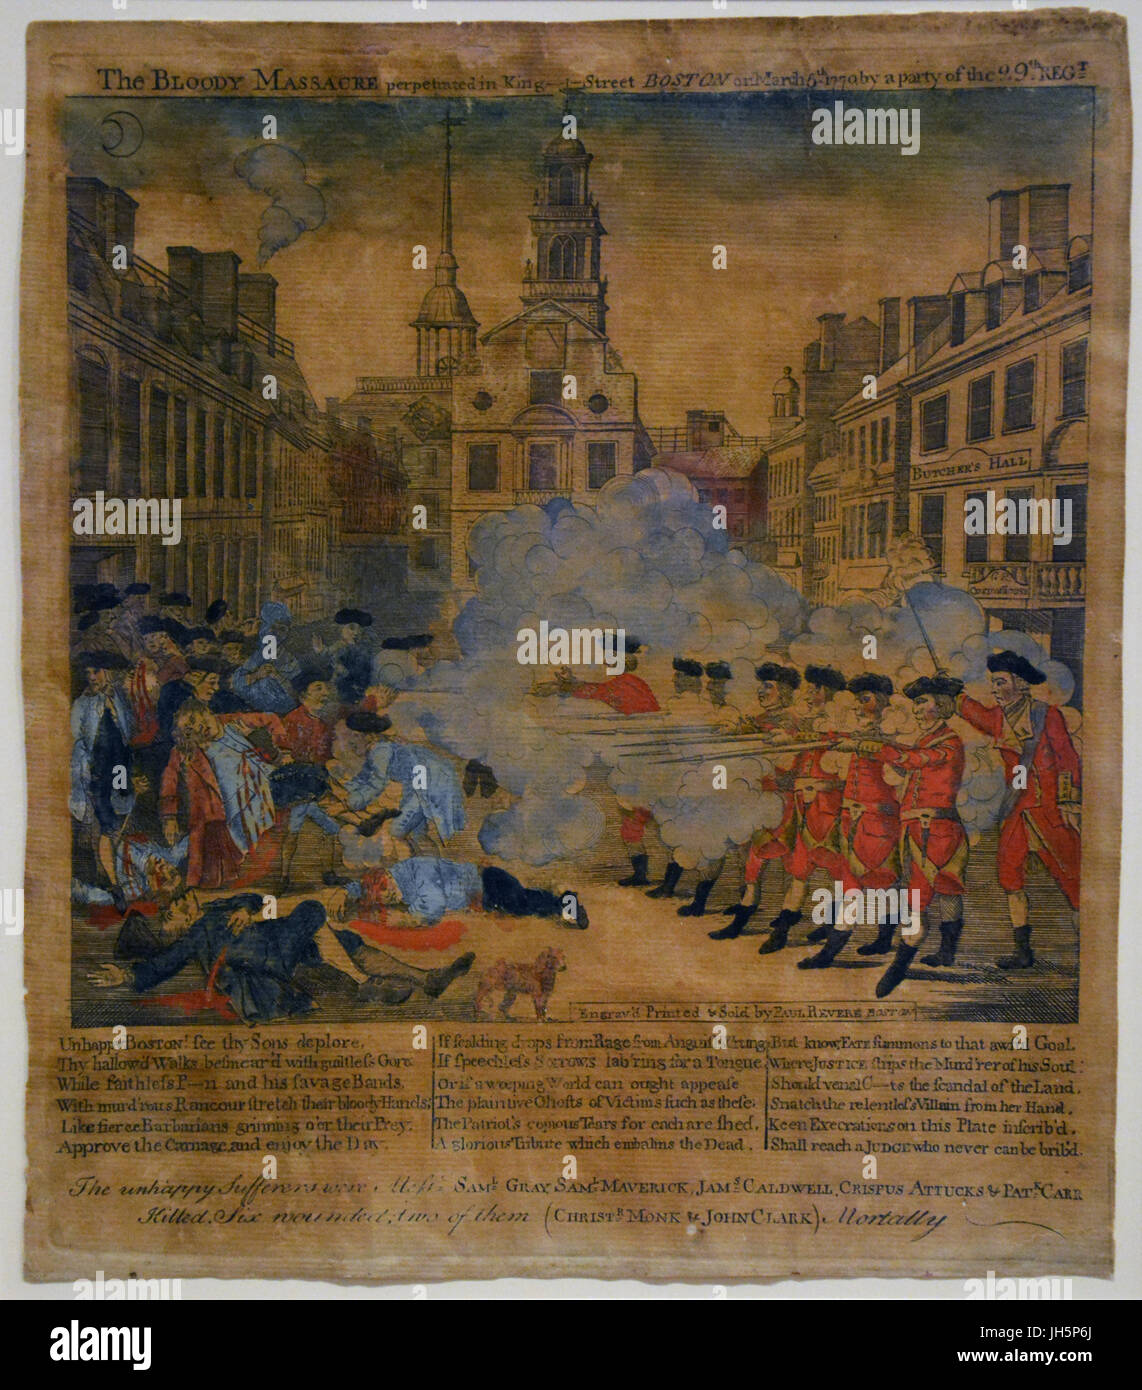 Yellowed copy of Paul Revere's engraving